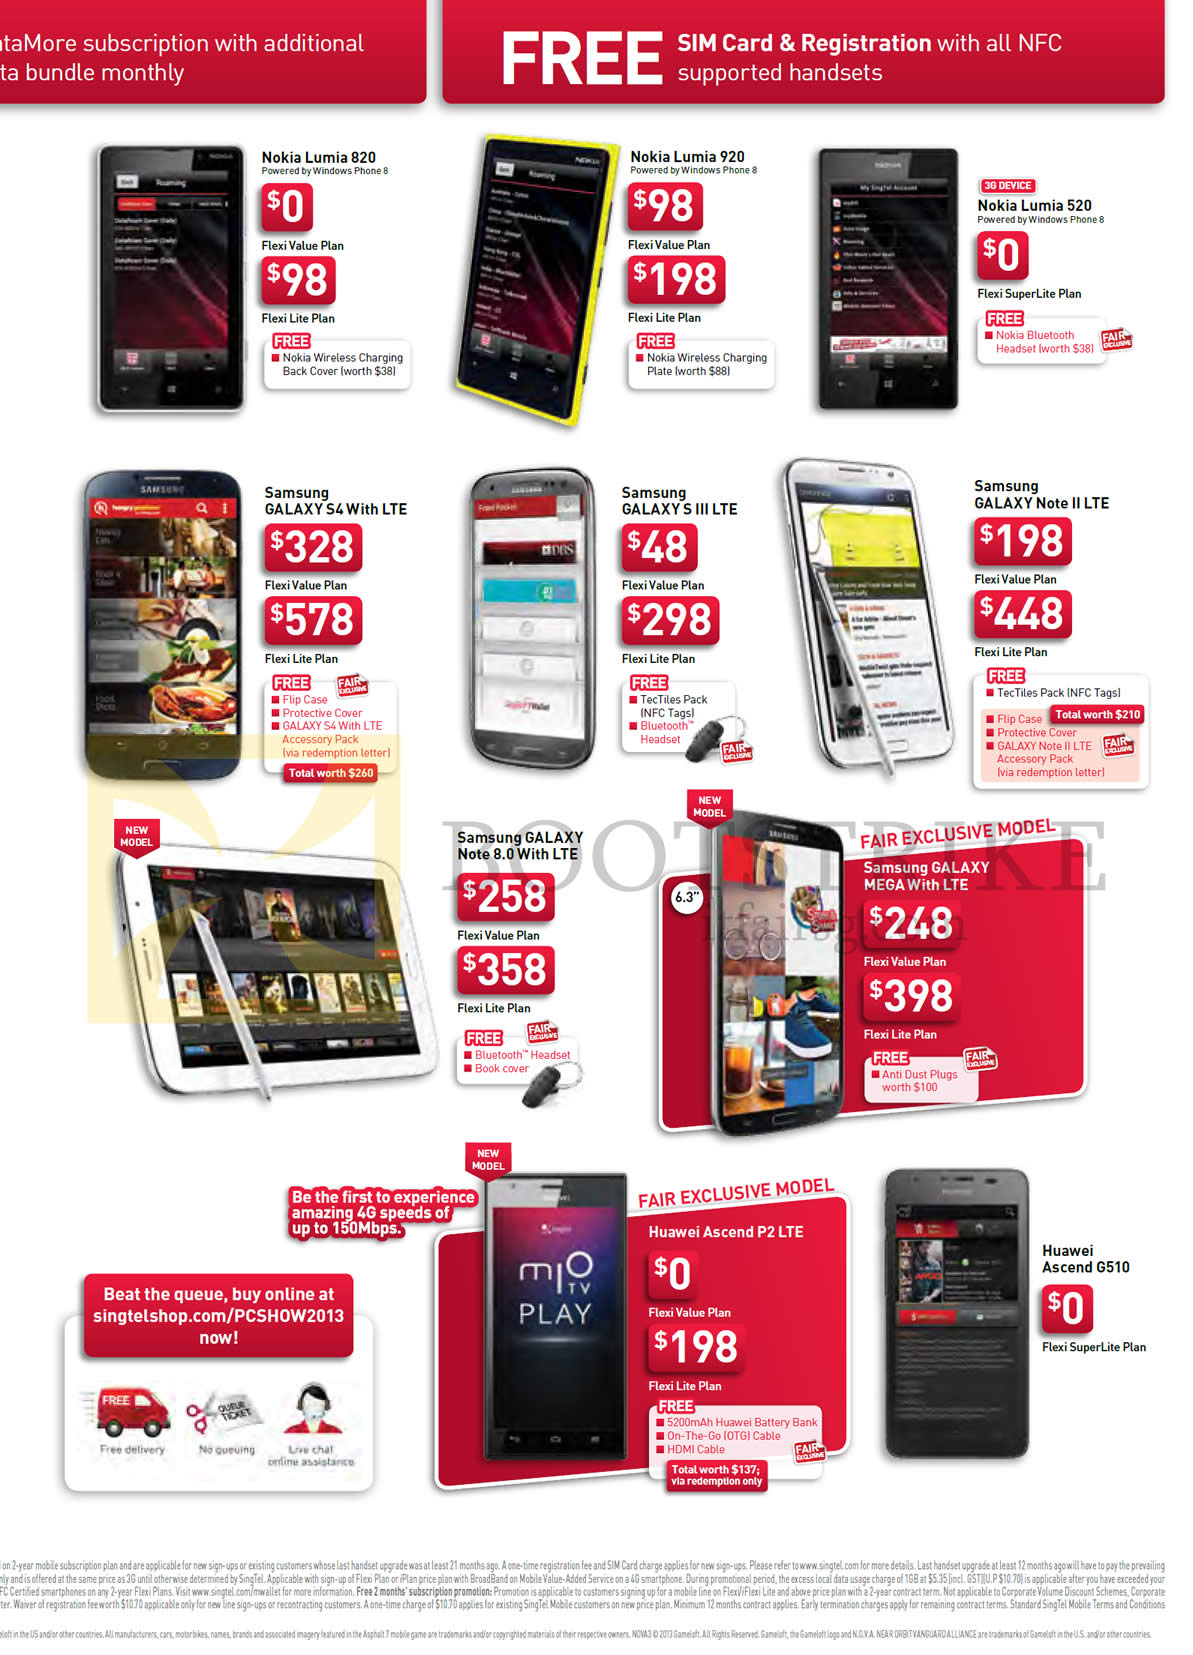 huawei phones price list. mobile nokia lumia 820, 920, 520, samsung galaxy s4, s iii lte, note ii 8.0, mega, huawei ascent p2 g510 phones price list i